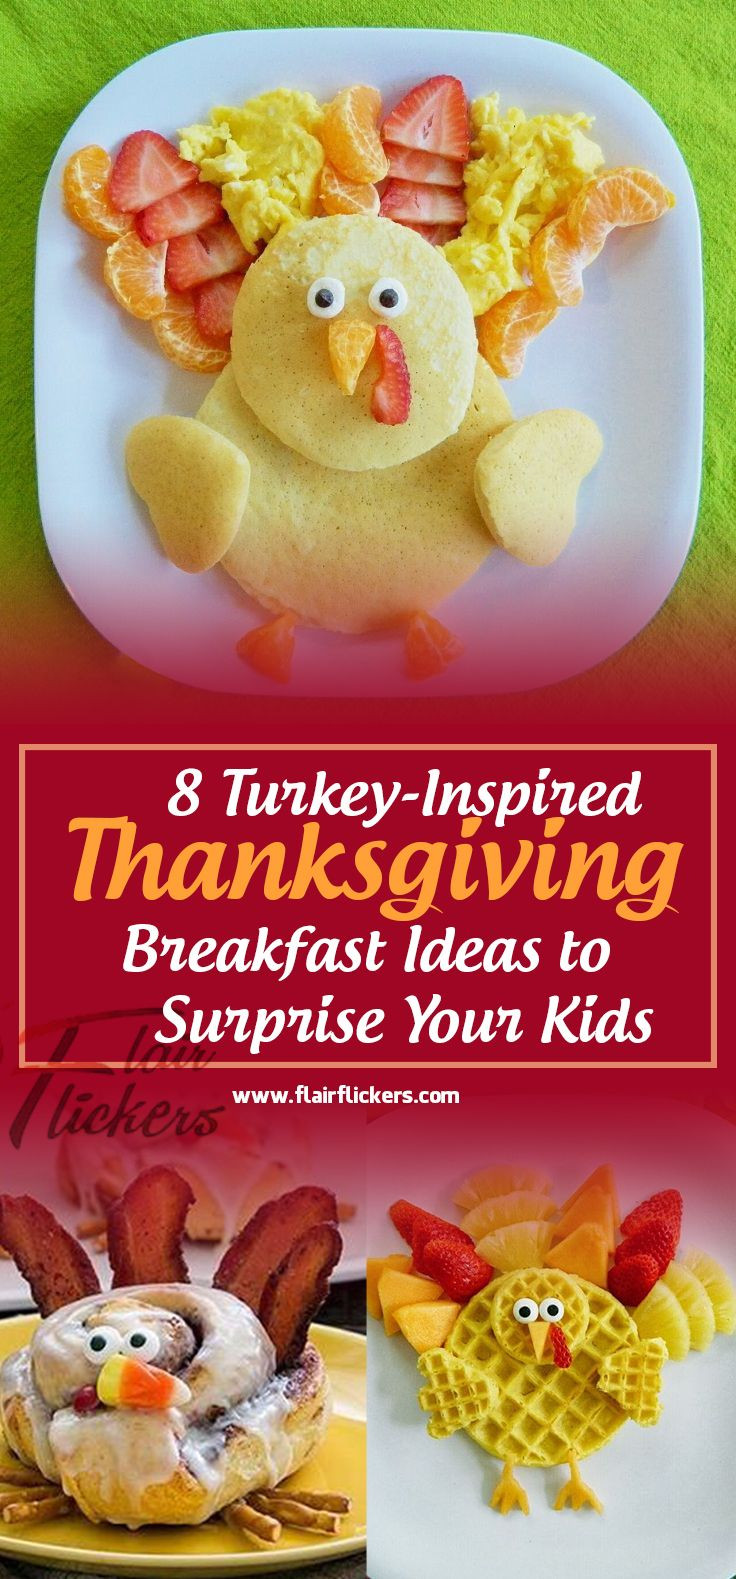 Breakfast Open On Thanksgiving  444 best images about Holiday Thanksgiving on Pinterest